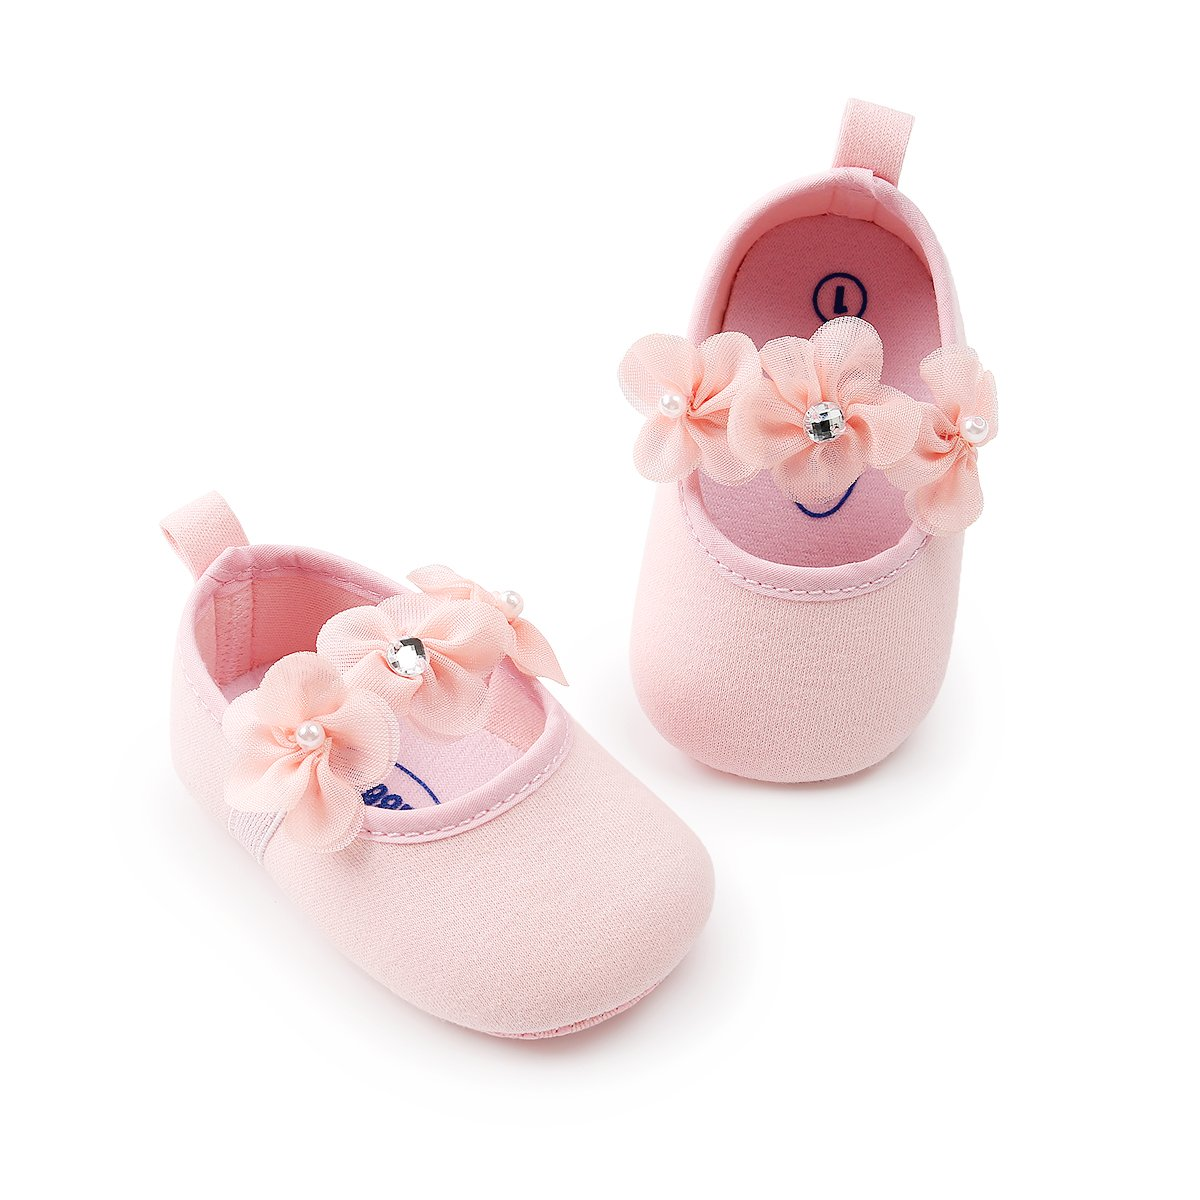 SOFMUO Baby Girls Floral Mary Jane Flats Soft Sole Infant Crib Walking Shoes with Headband